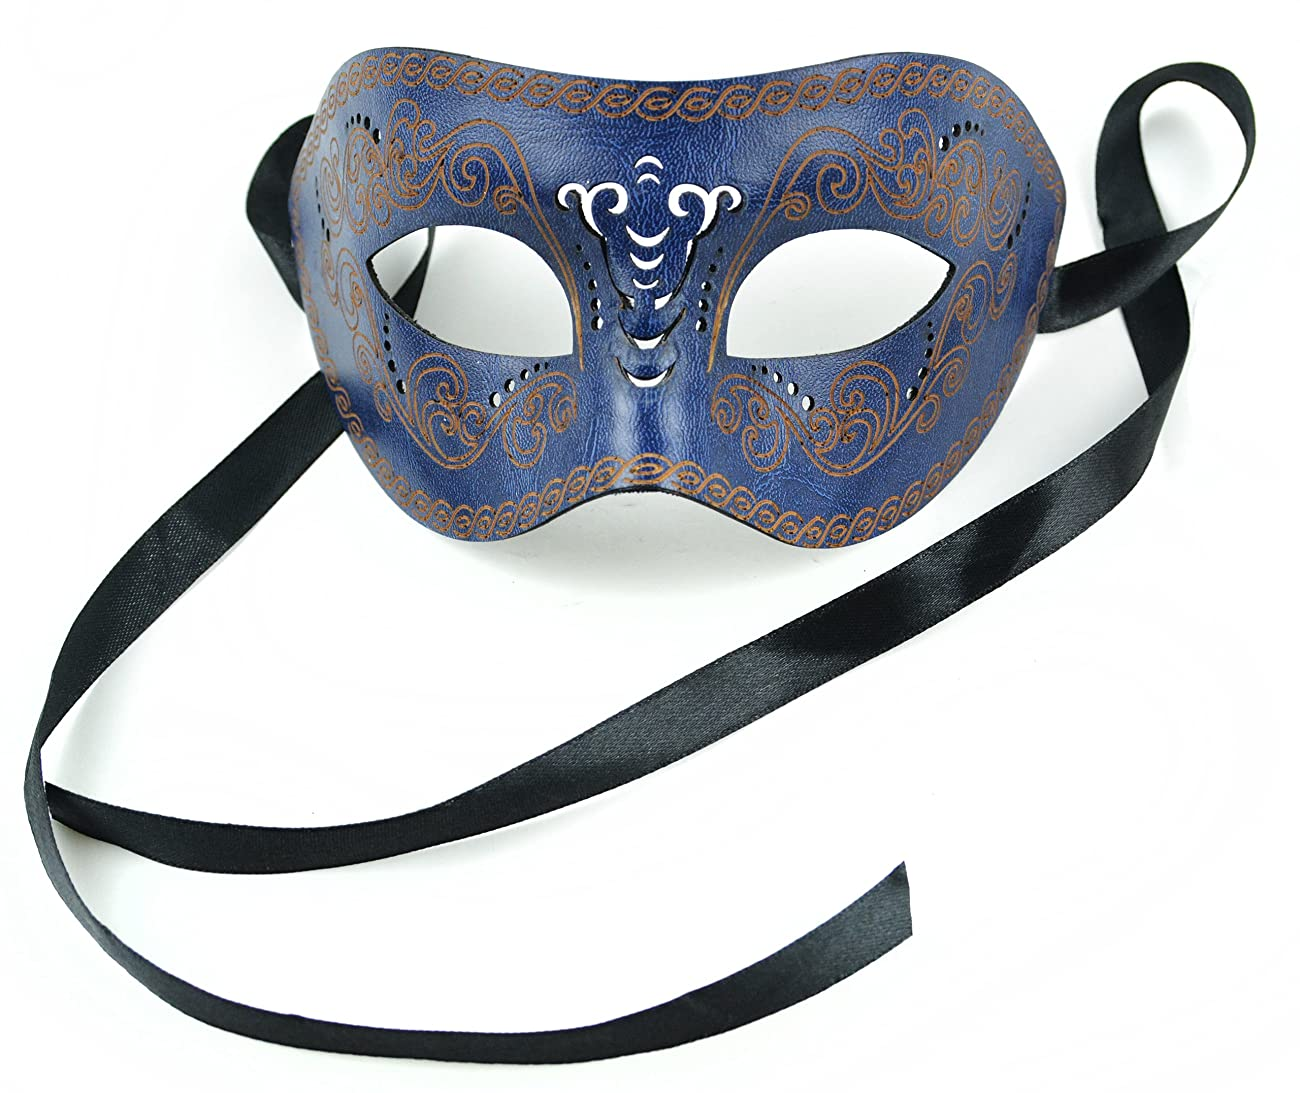 Mask-It Leather Half Mask, 8-Inch, Navy 0